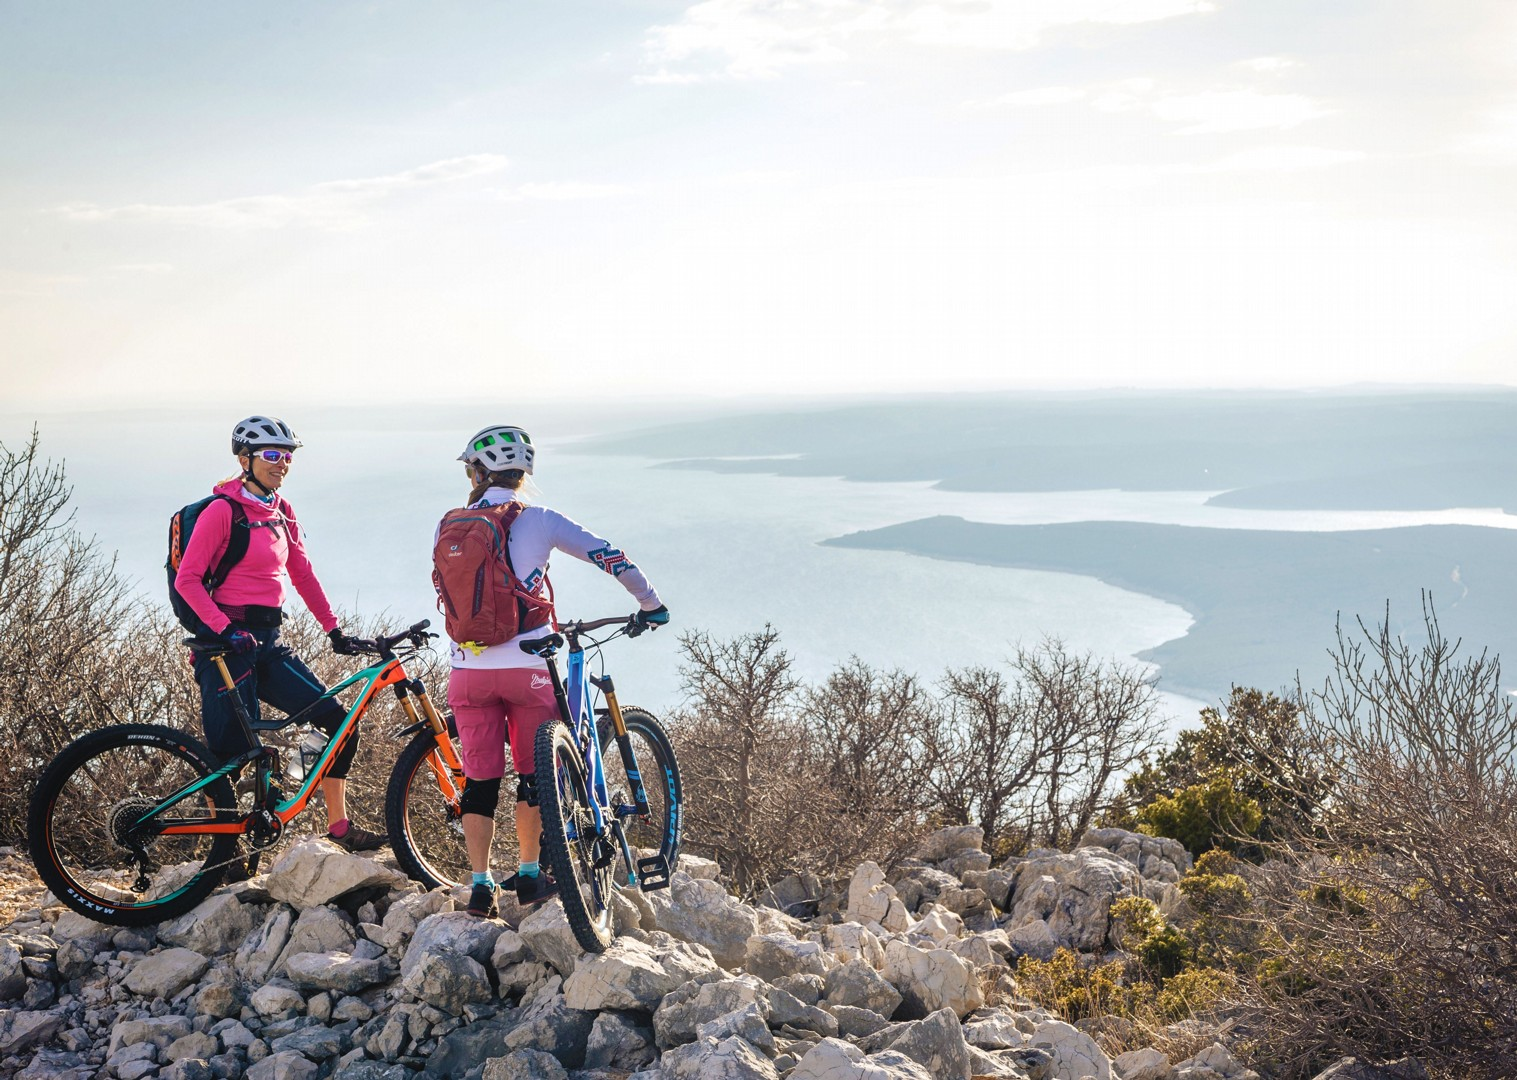 rabac-biking-in-croatia-guided-holiday-skedaddle.jpg - Croatia - Terra Magica - Mountain Biking